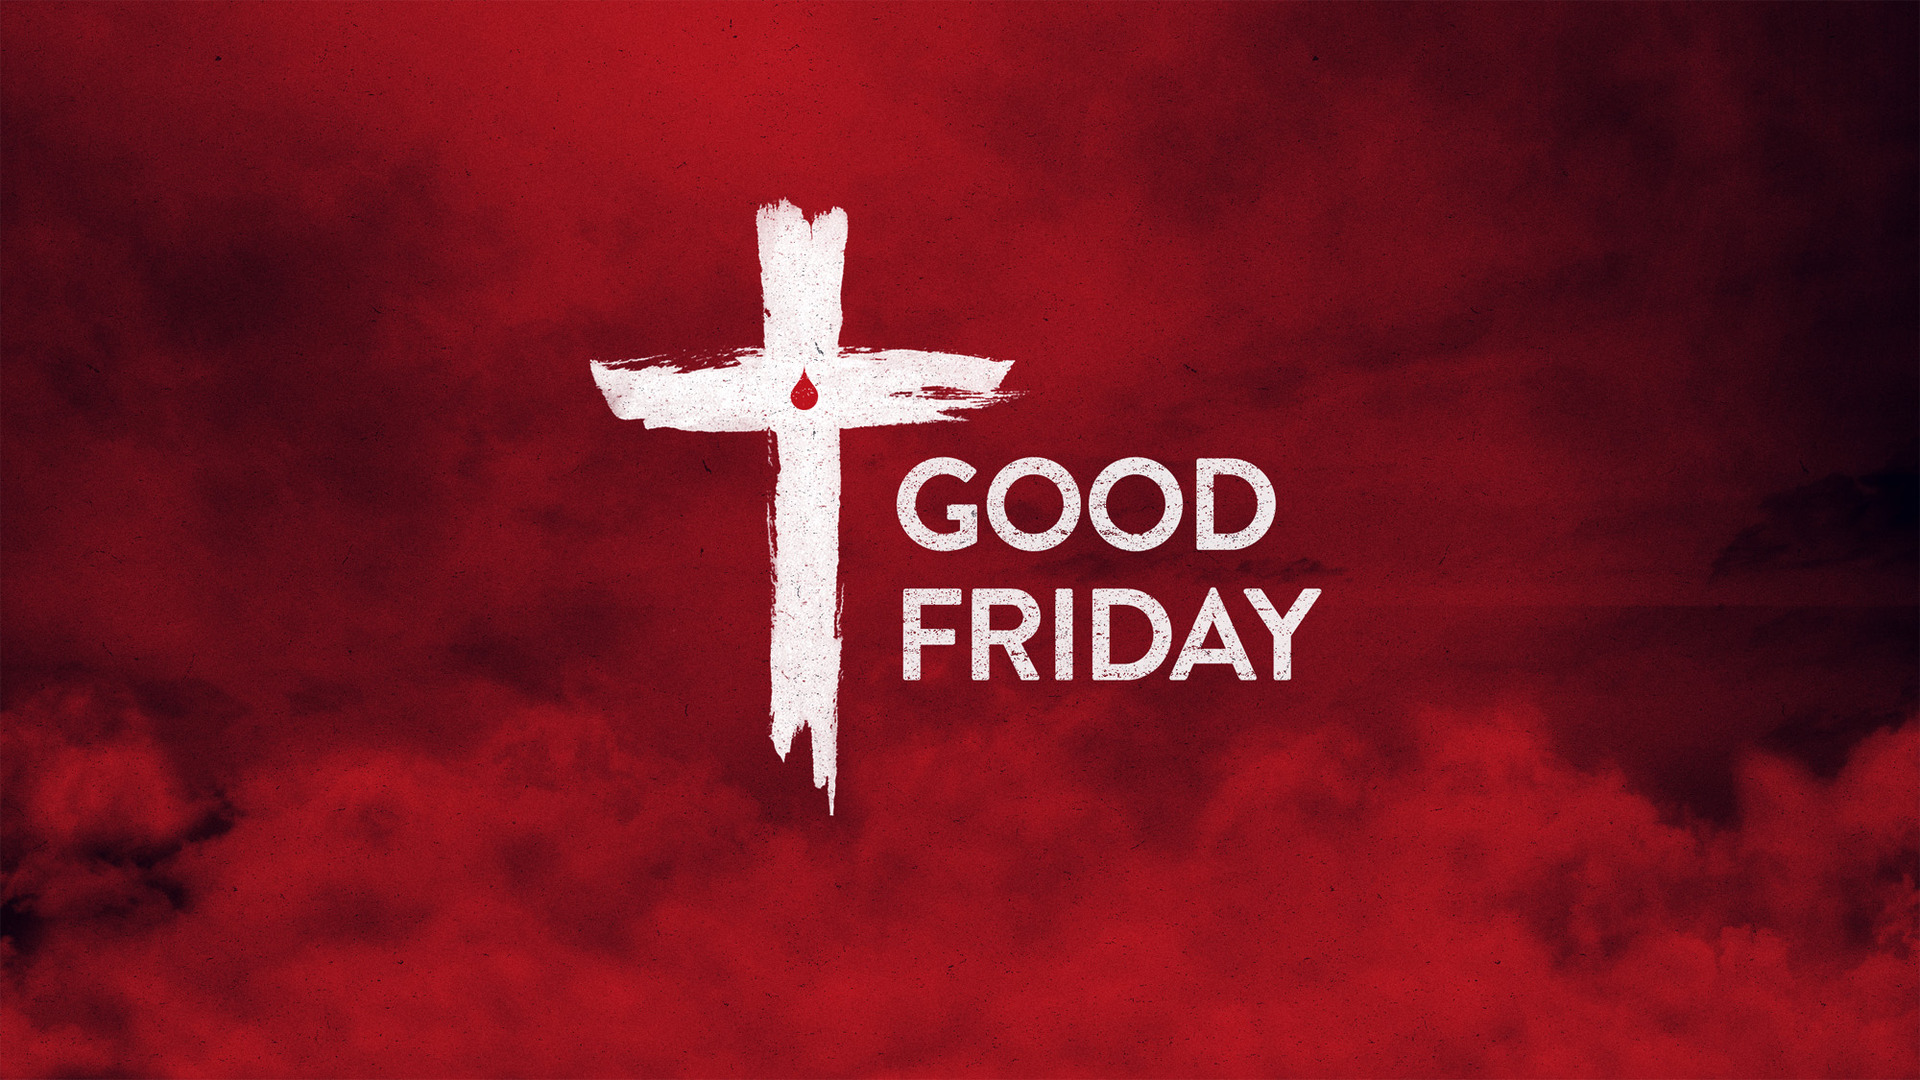 good_friday-title-2-Wide 16x9.jpg